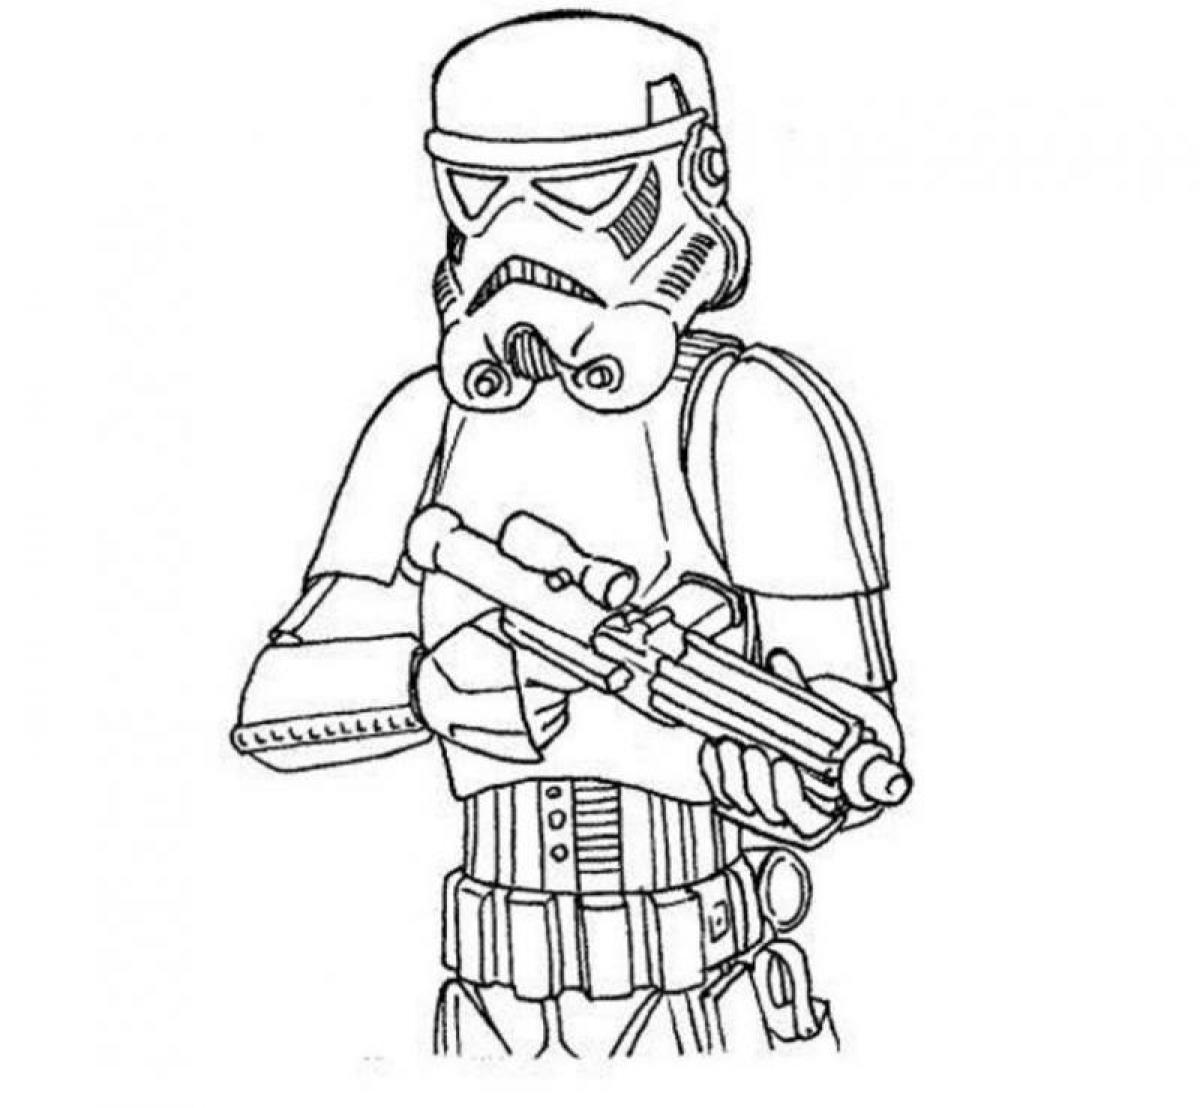 9 Best Images of Baby Stormtrooper Star Wars Printables ...